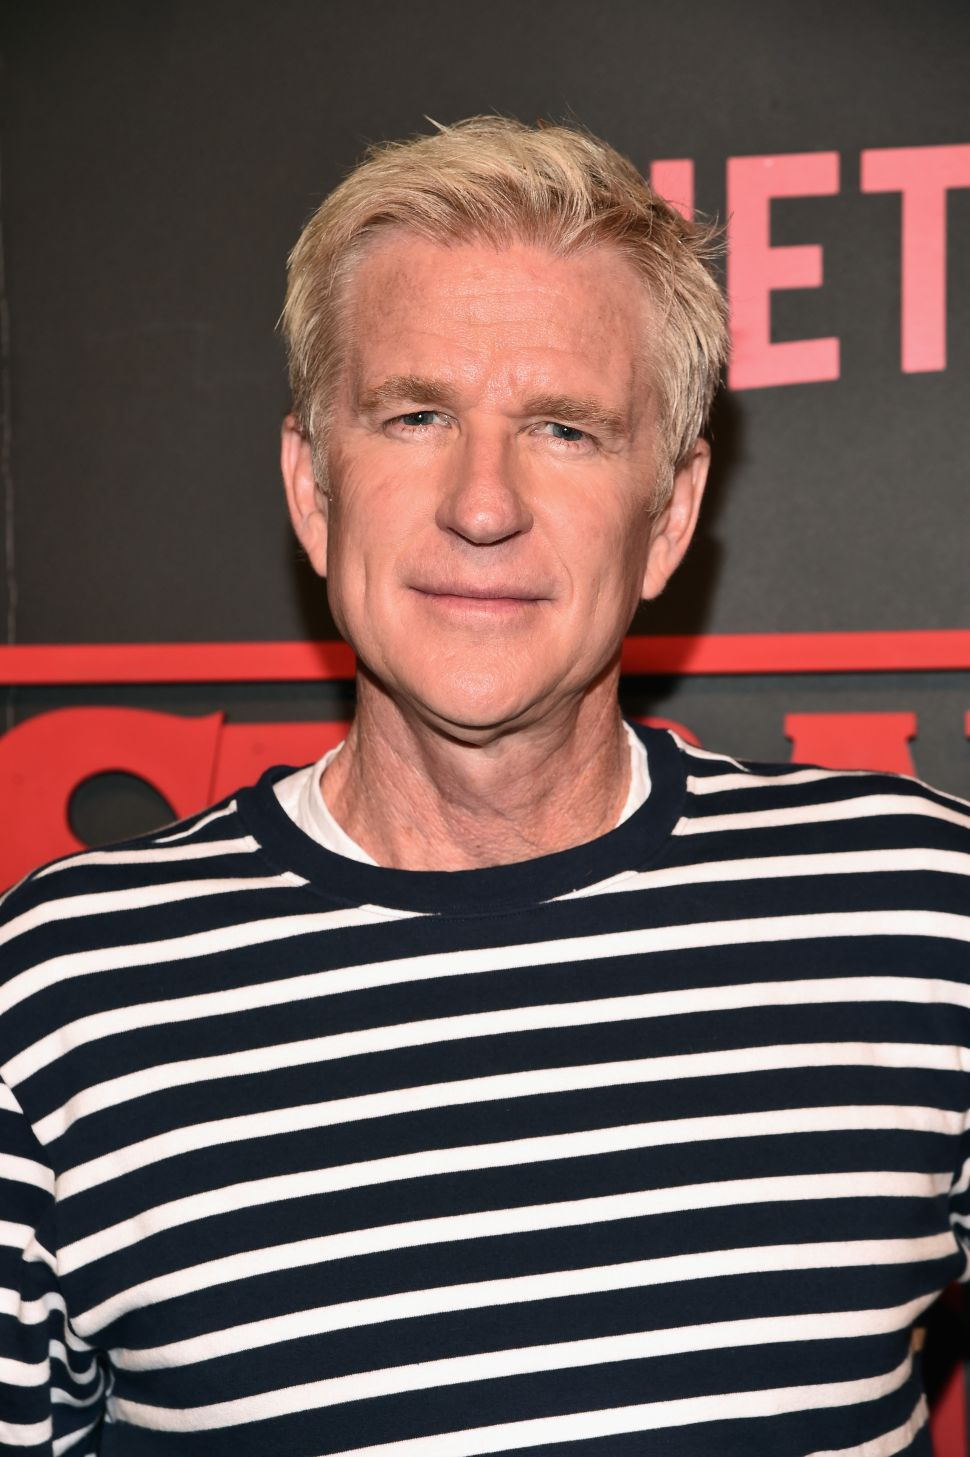 Matthew Modine on Netflix, New York and Even 'Stranger Things'